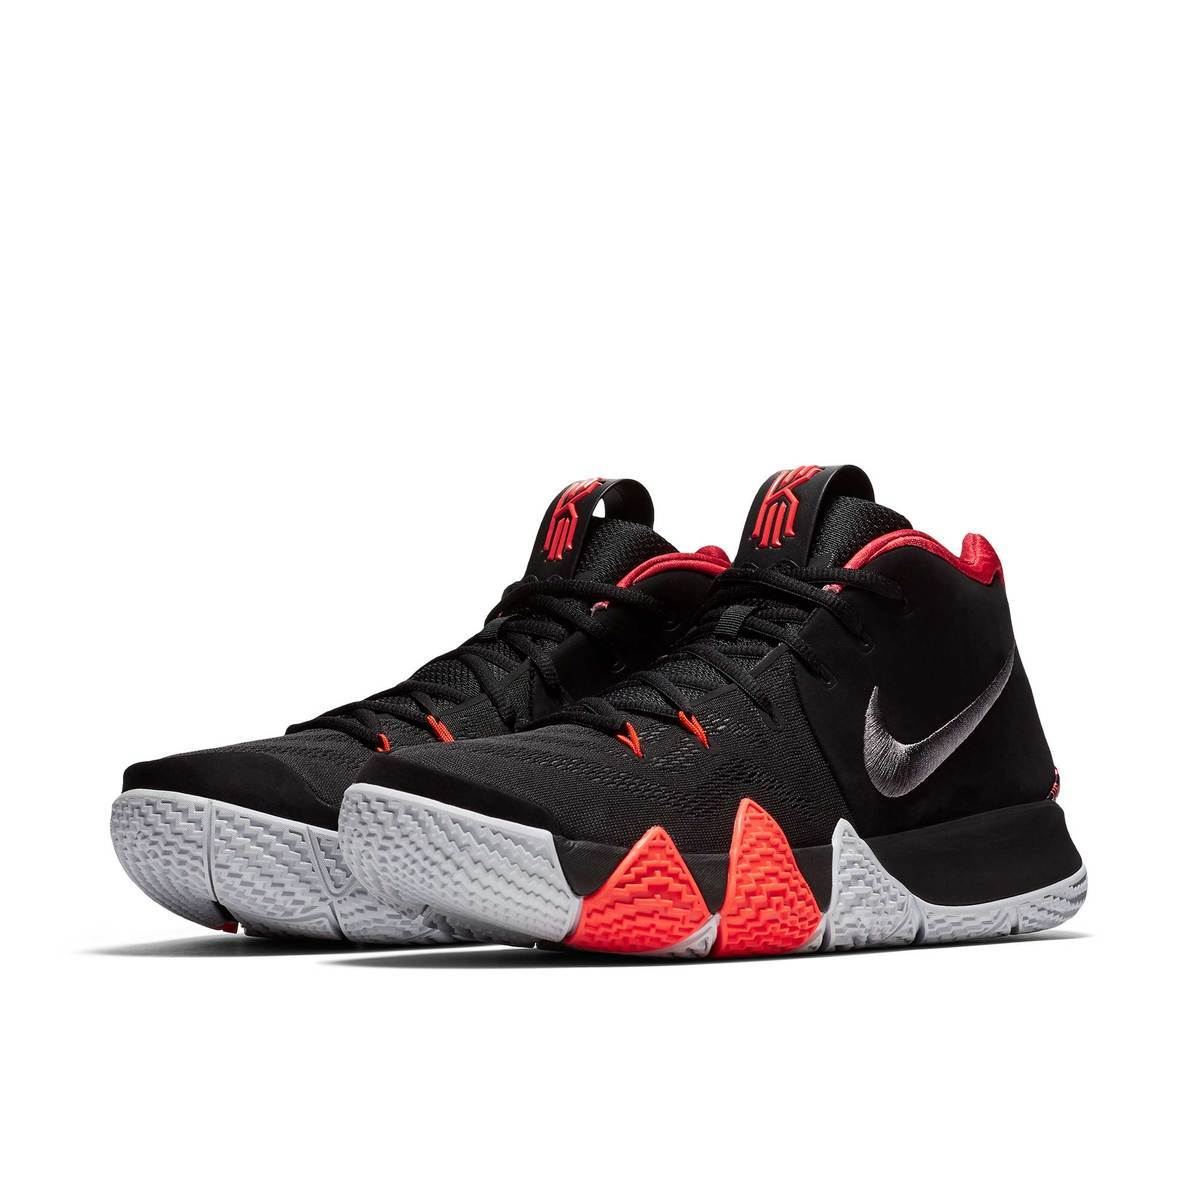 NIKE KYRIE 4 EP Original New Arrival Original Men Basketball Shoes Comfortable Breathable Hiking Sport Outdoor Sneakers 943807 in Basketball Shoes from Sports Entertainment